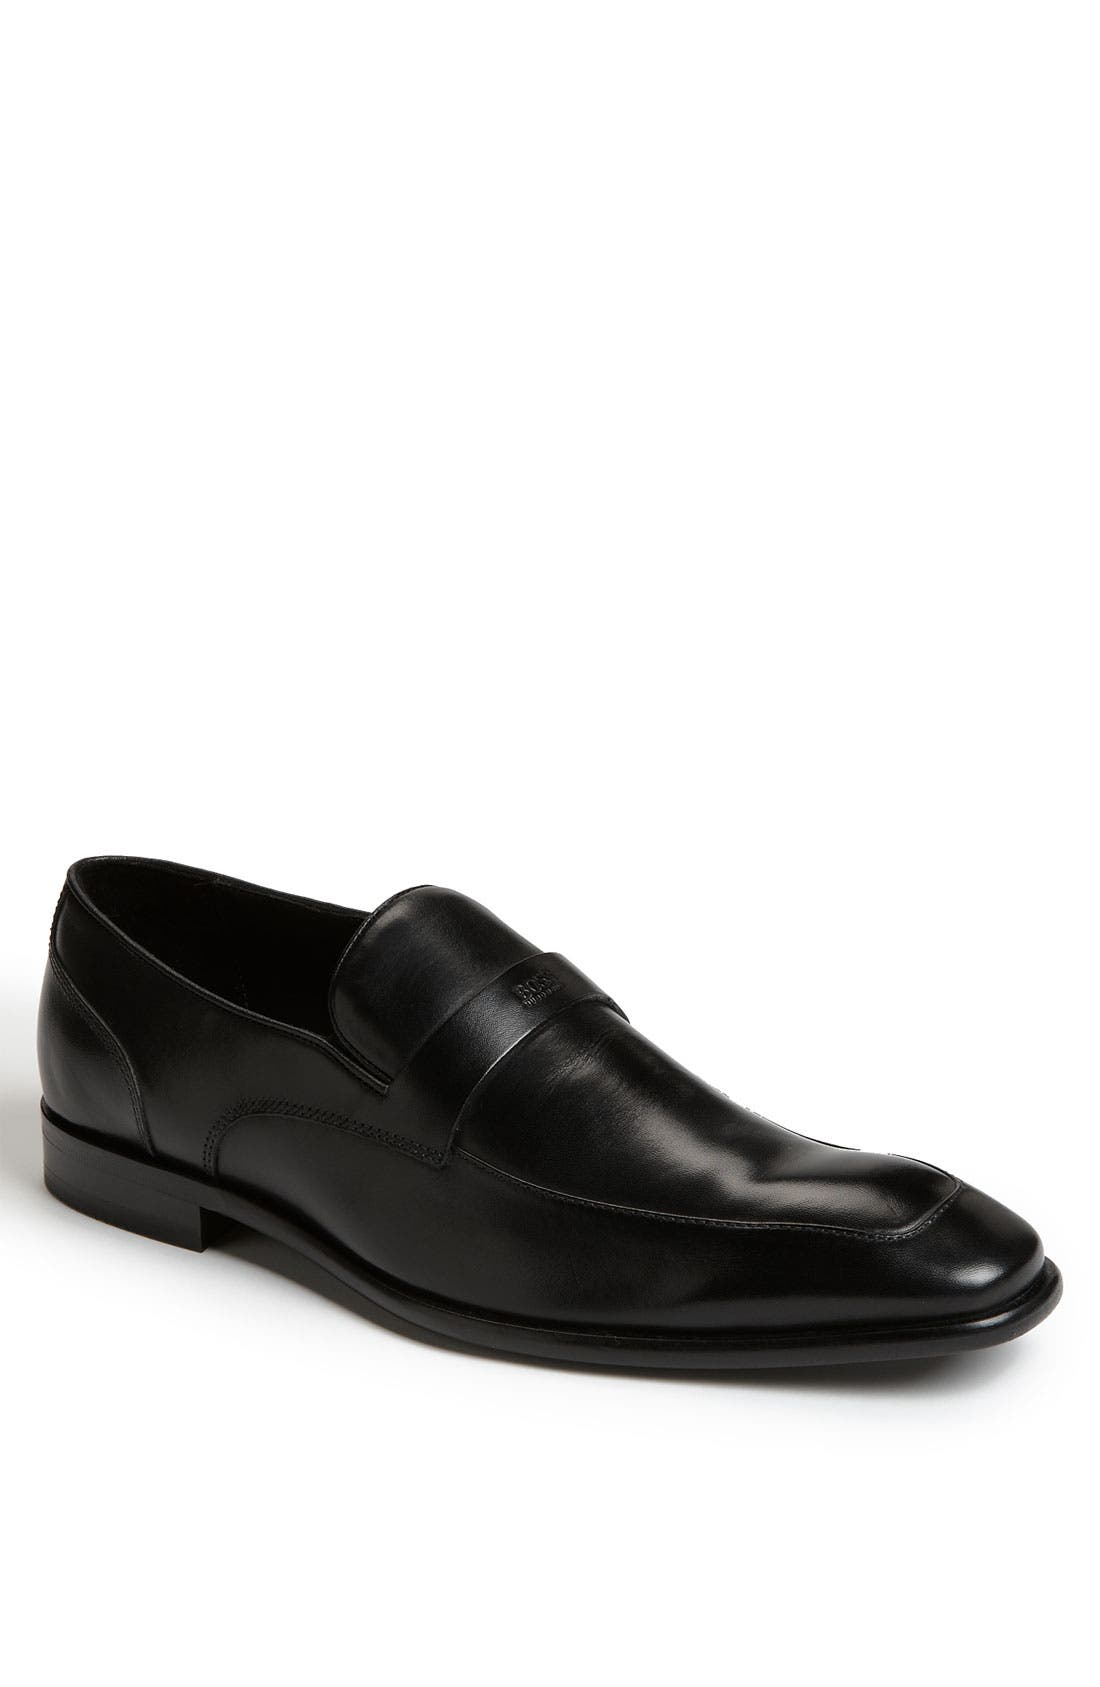 Alternate Image 1 Selected - BOSS HUGO BOSS 'Metero' Loafer (Men)